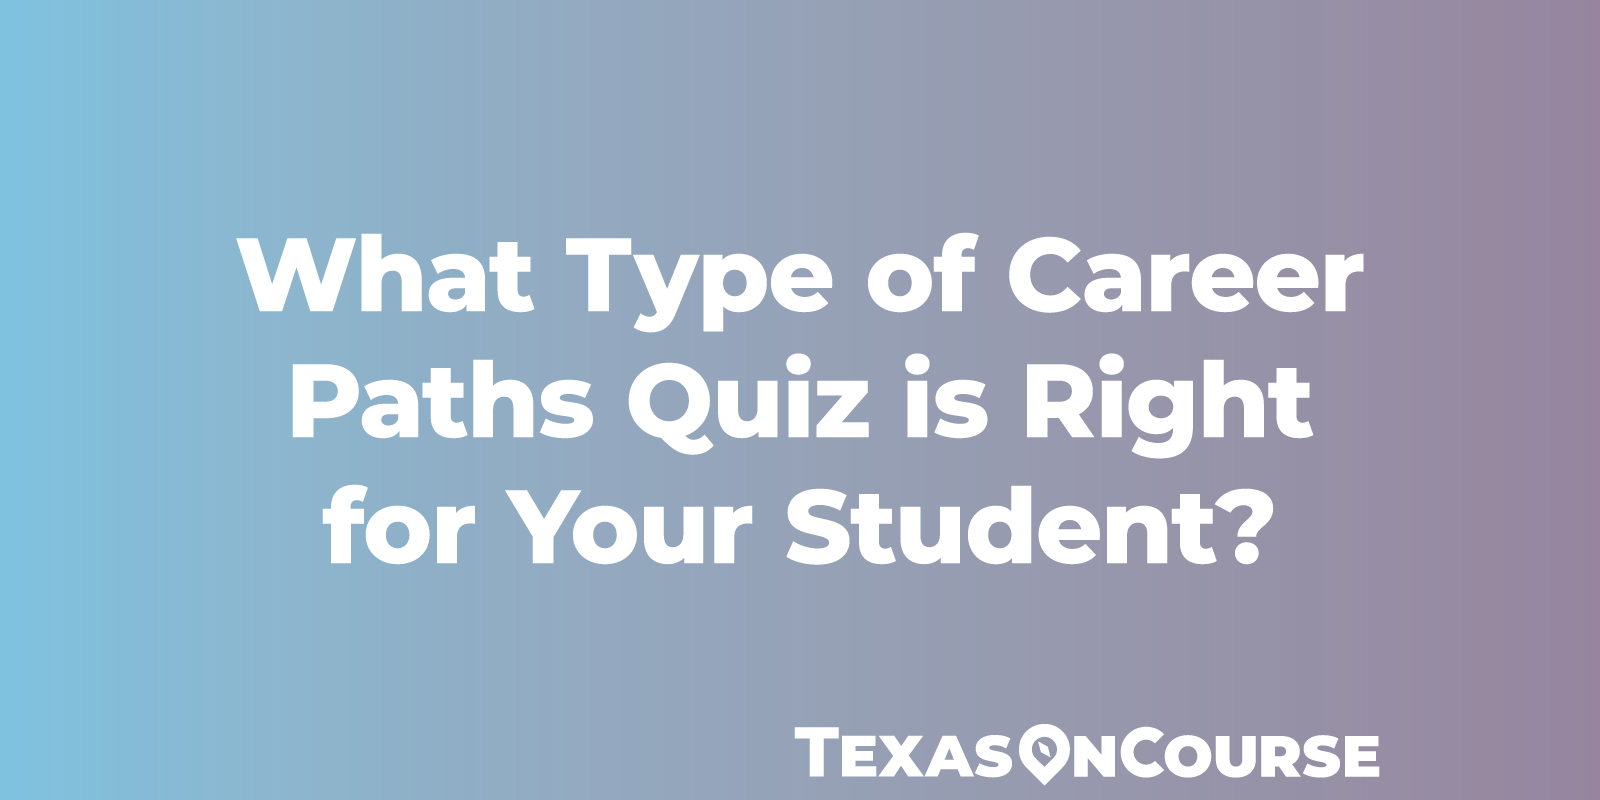 What Type of Career Paths Quiz is Right for Your Student?